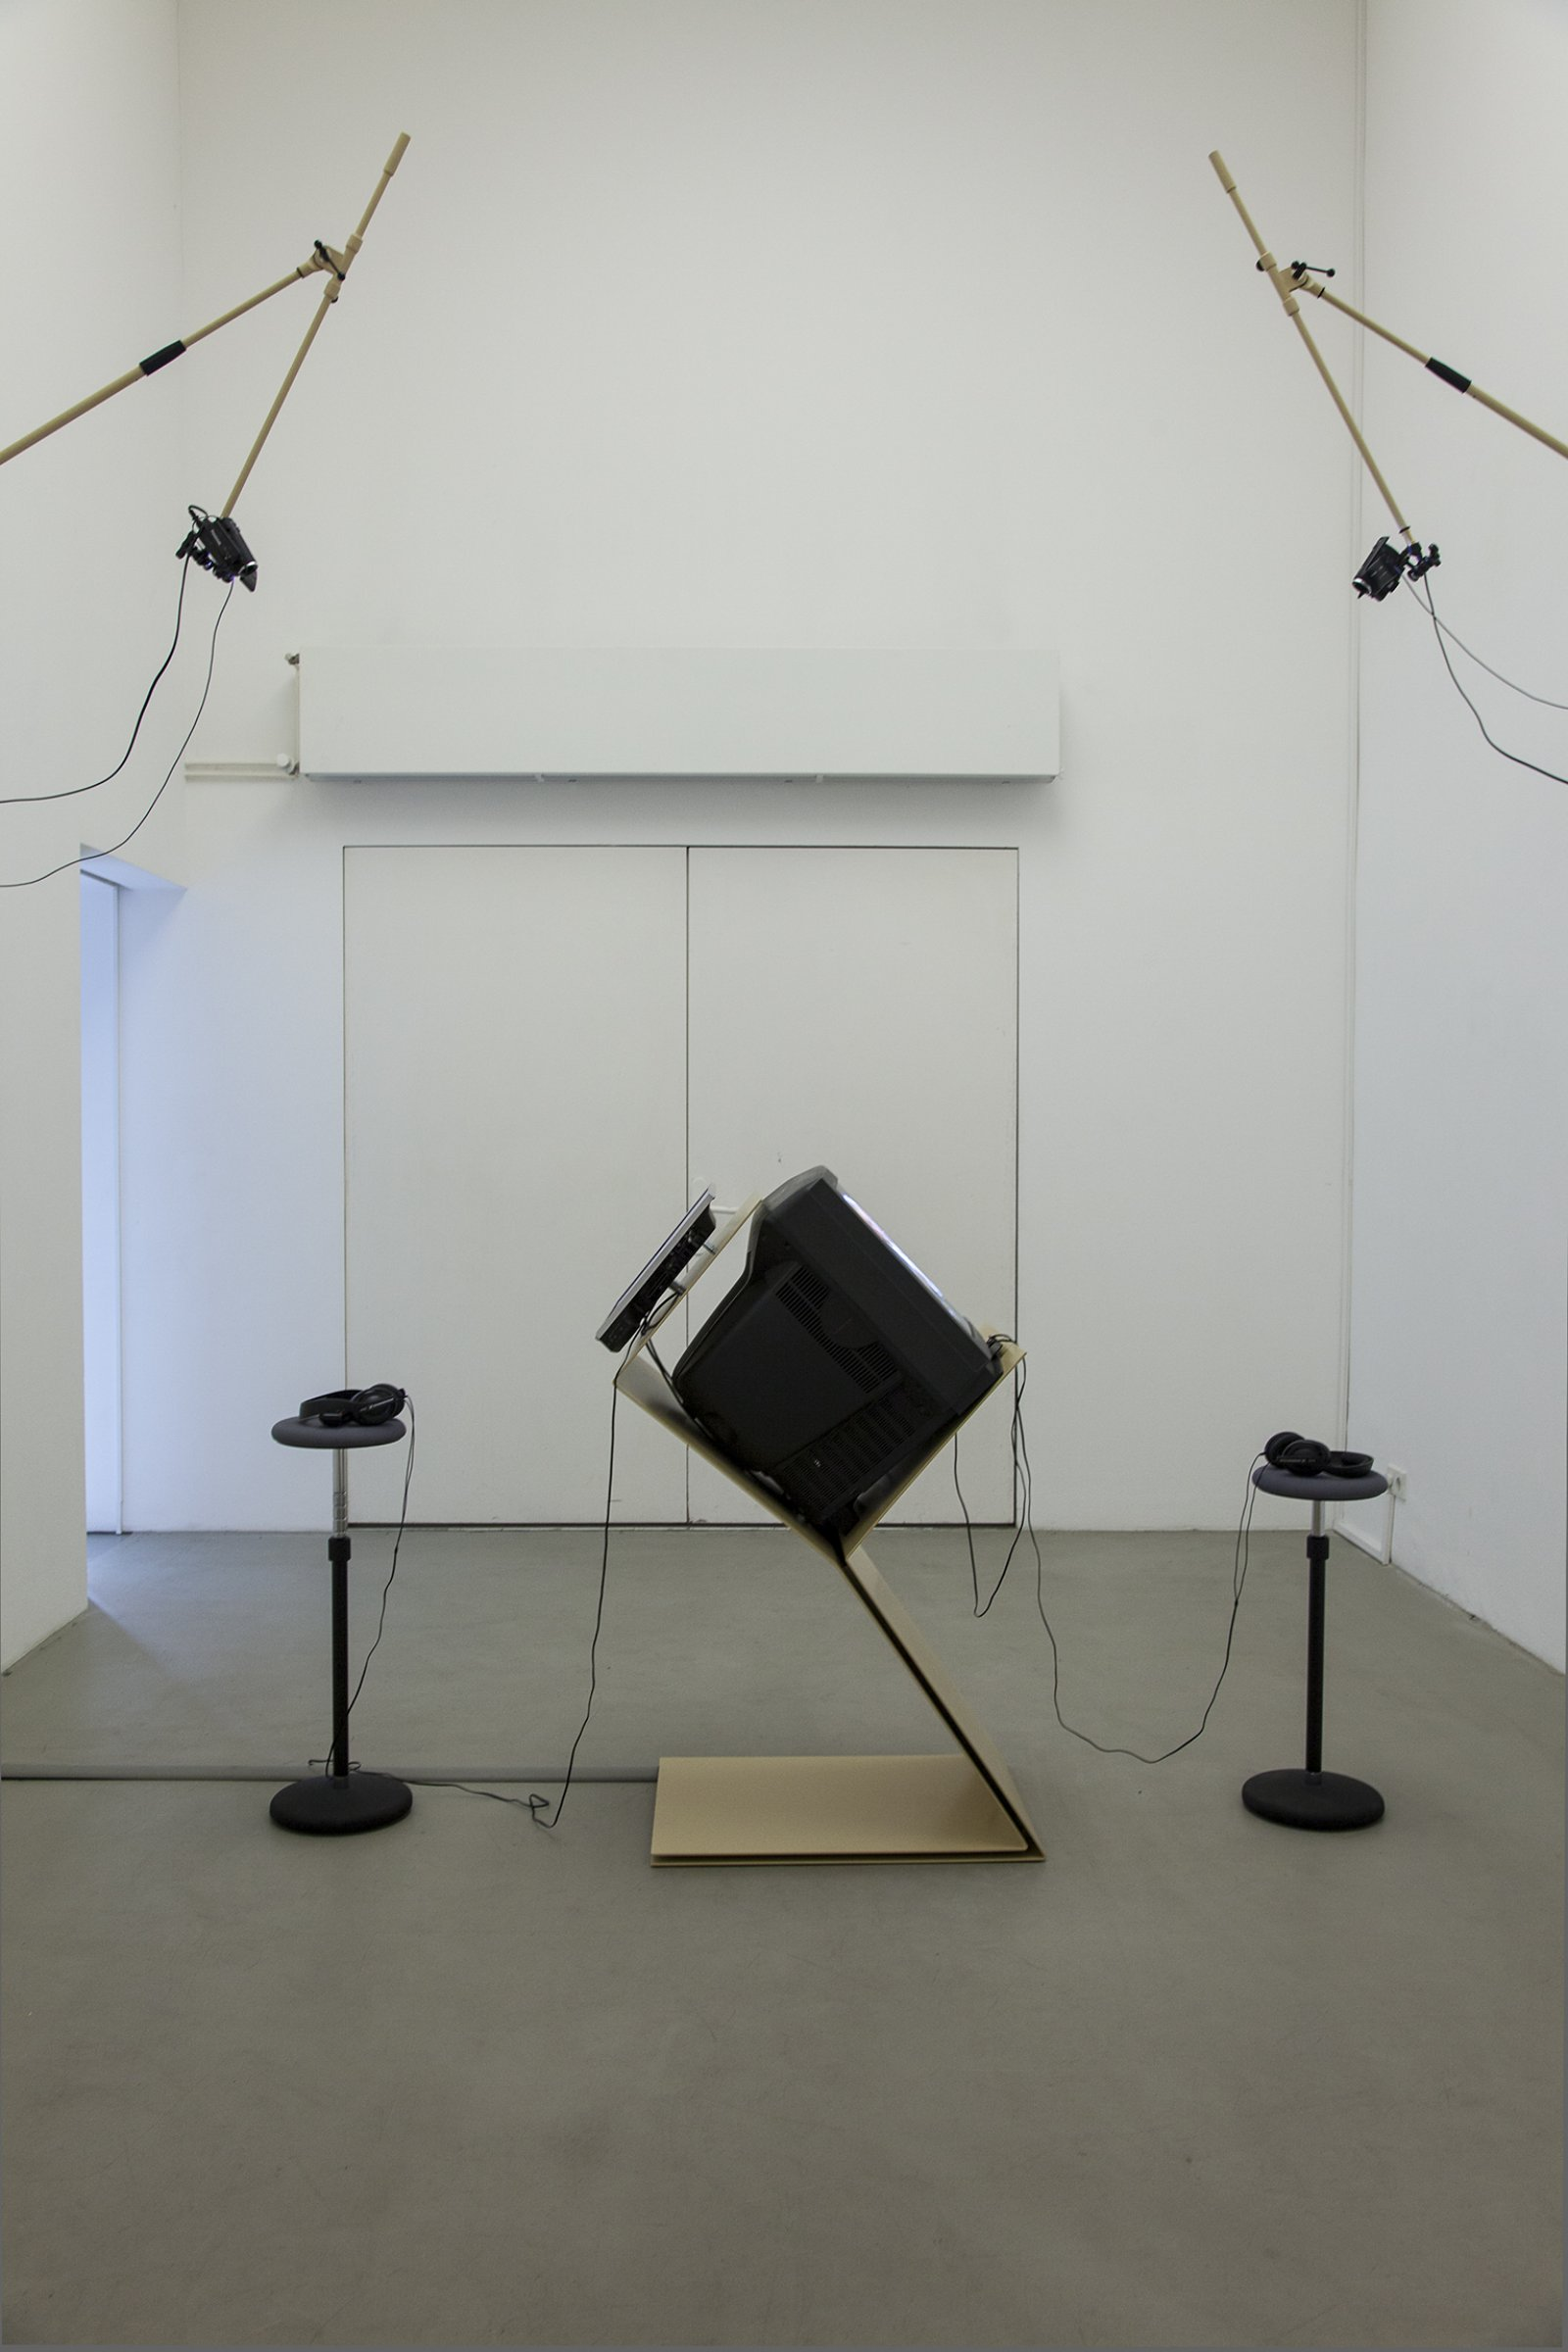 Judy Radul, A CONTAINER CONTAINING NOT ONE TV, 2013, powder coated steel, CRT television, 2 flatscreen televisions, local television signal, remote control, two live video cameras, maxmsp patch, dimensions variable by Judy Radul